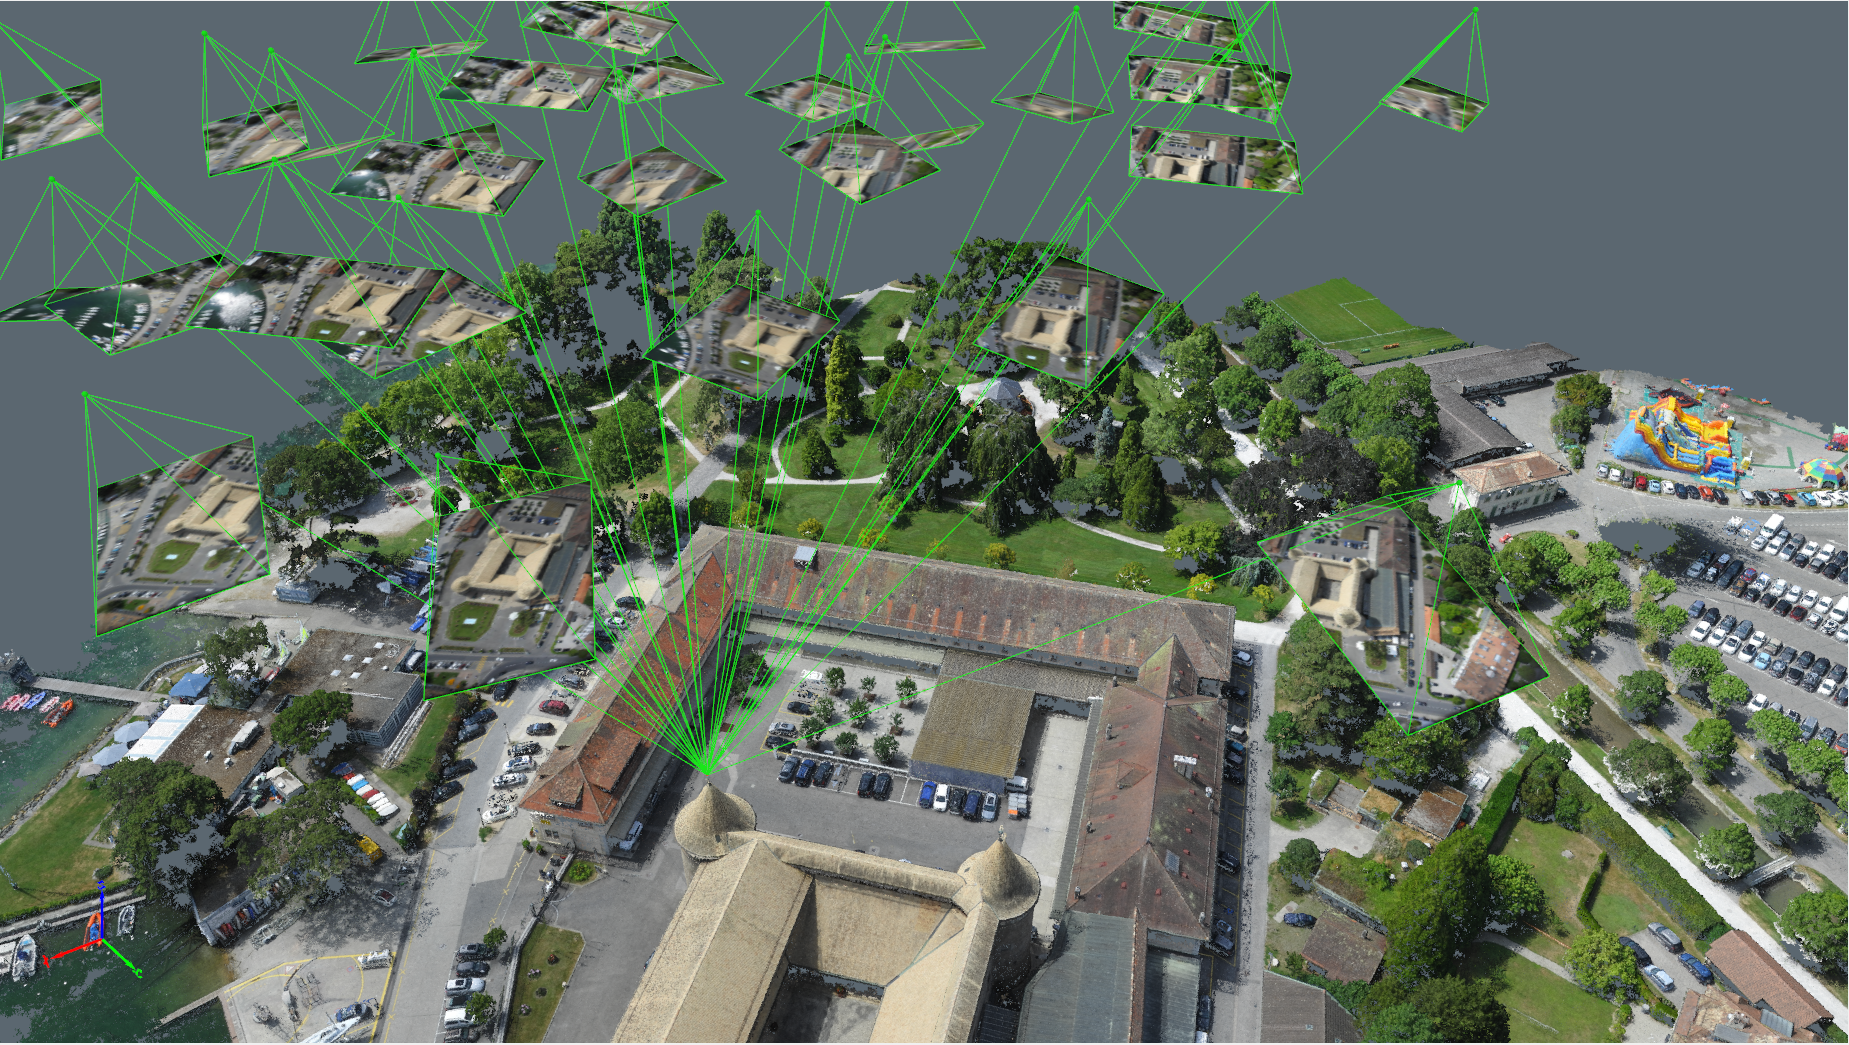 Pix4D's rayCloud can be used to demonstrate the principles of photogrammetry